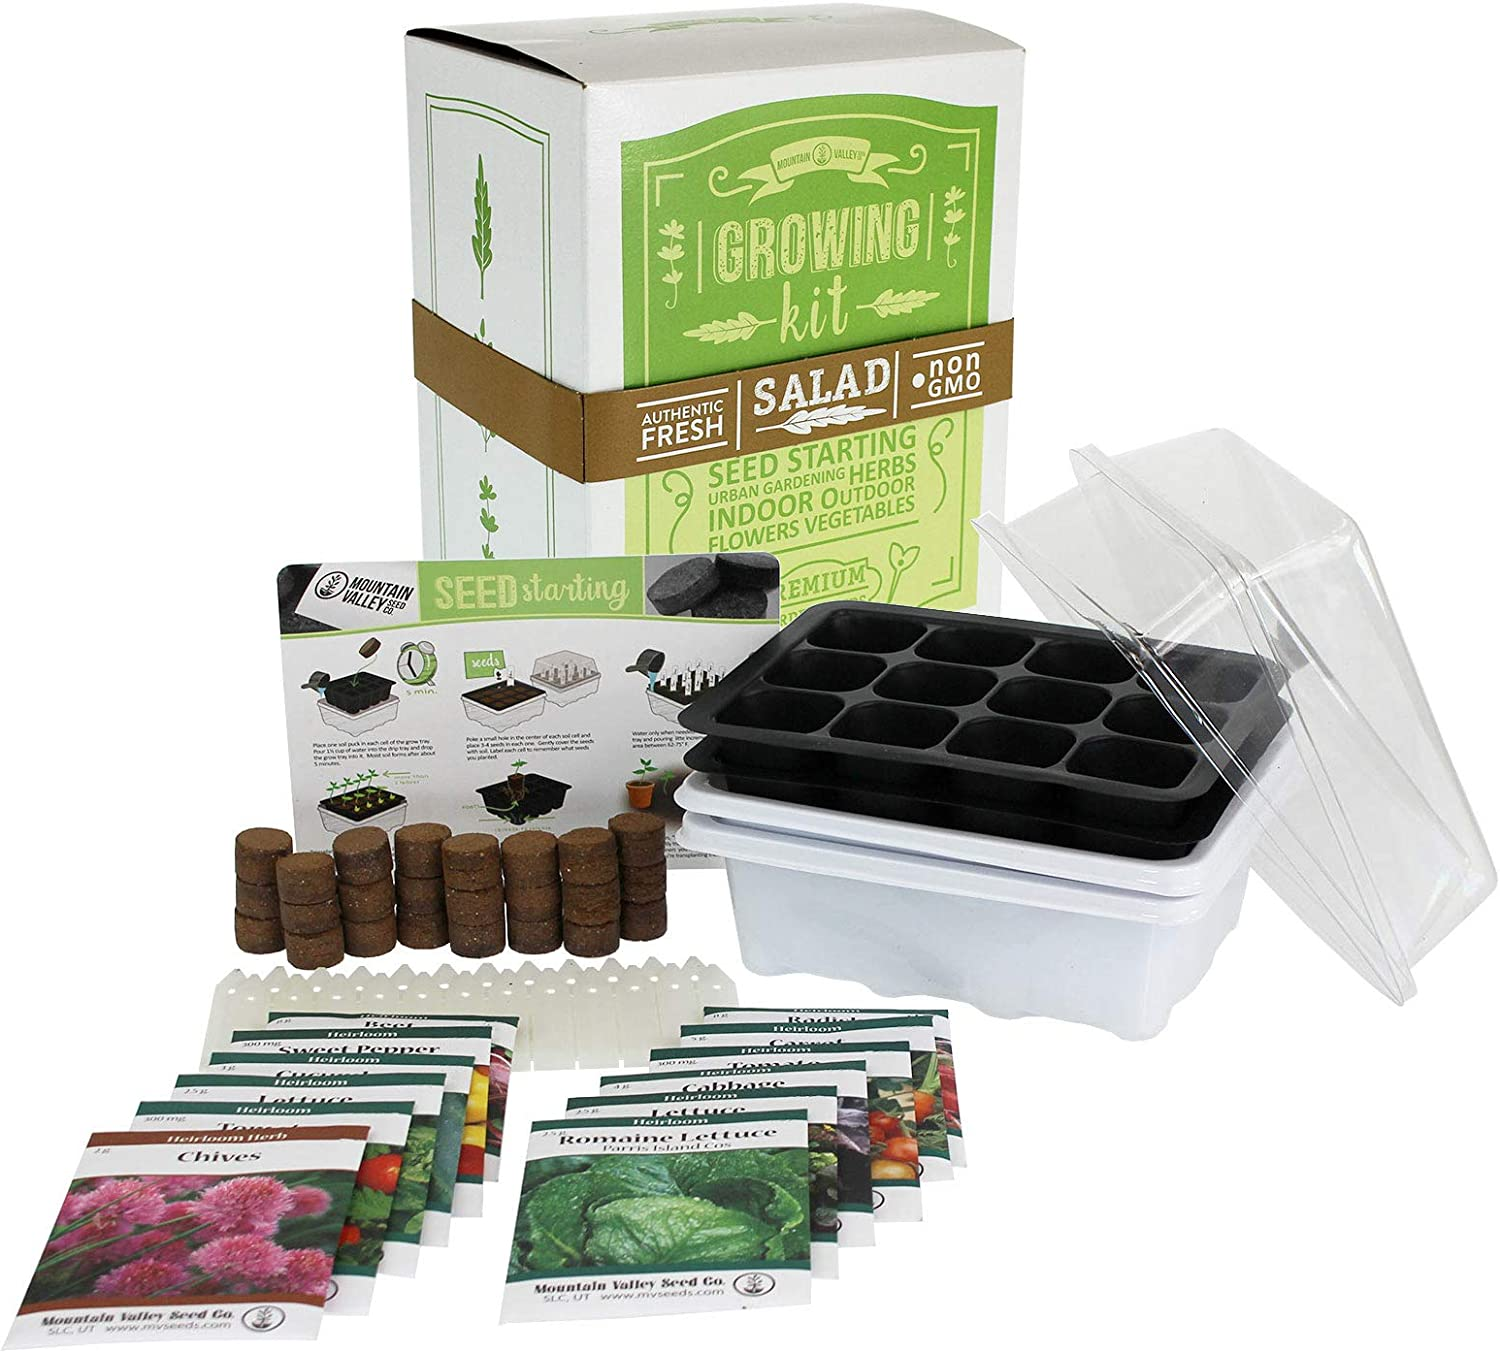 Mexican Salsa & Hot Sauce Making Kit | Deluxe | 12 Non-GMO Seed Varieties | Mexican Seeds for Salsa, Pico De Gallo, Hot Sauce | Includes Chili Peppers, Tomato, Onion, Garlic Chives, Tomatillo, More